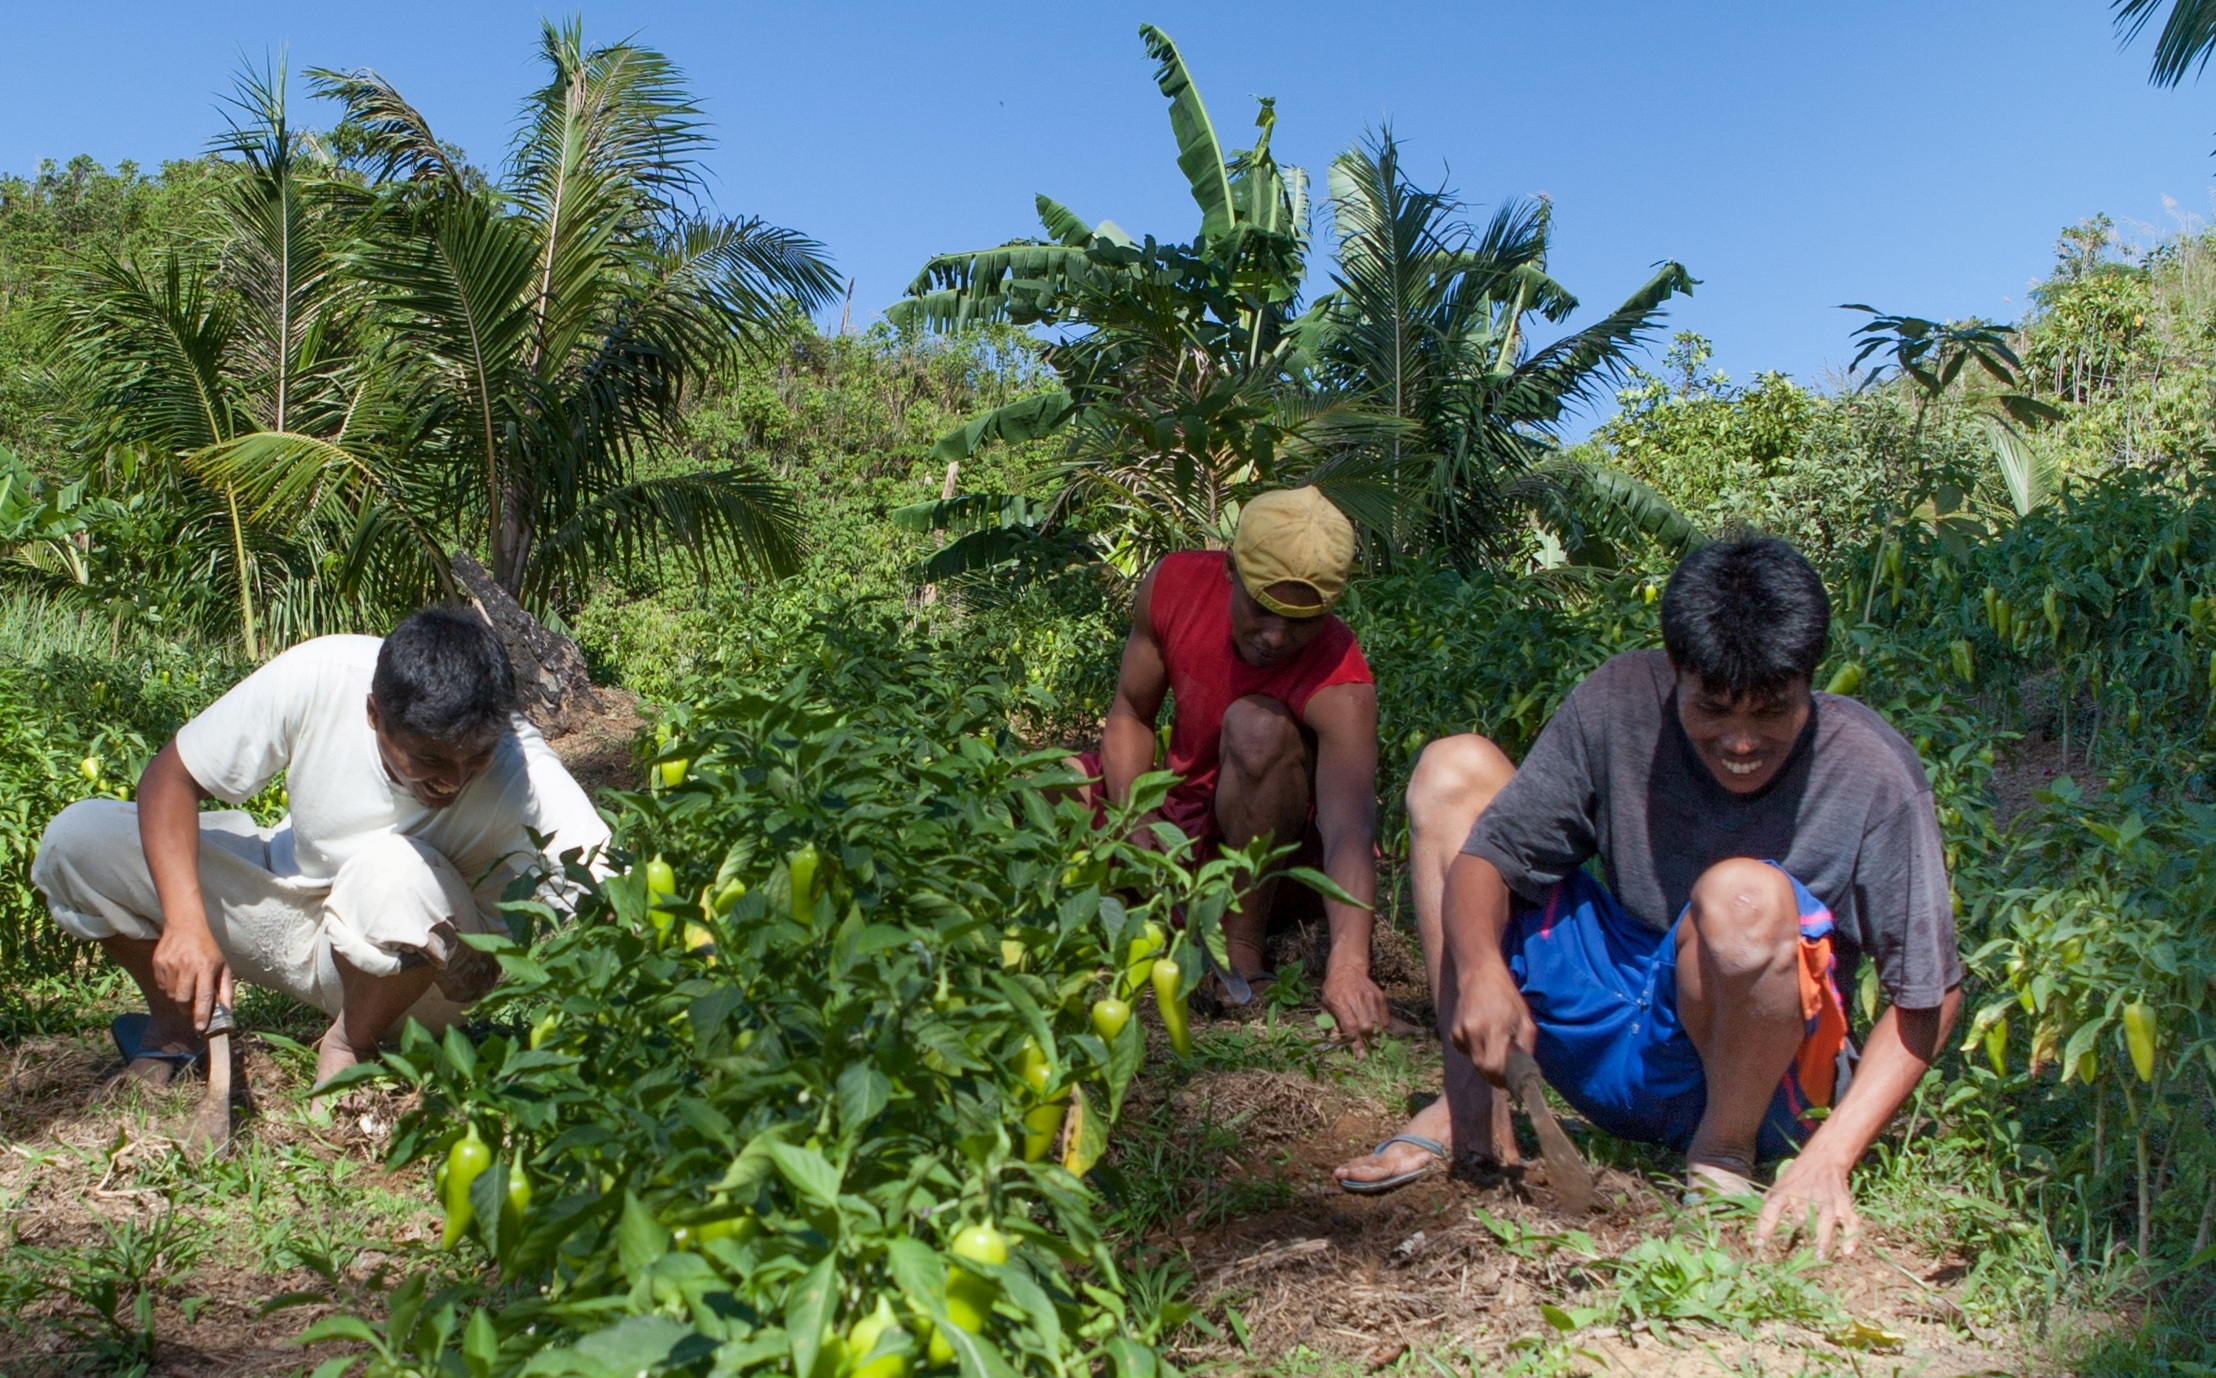 Zamboanga Farmer earns Php40k monthly from a small garden | TVI